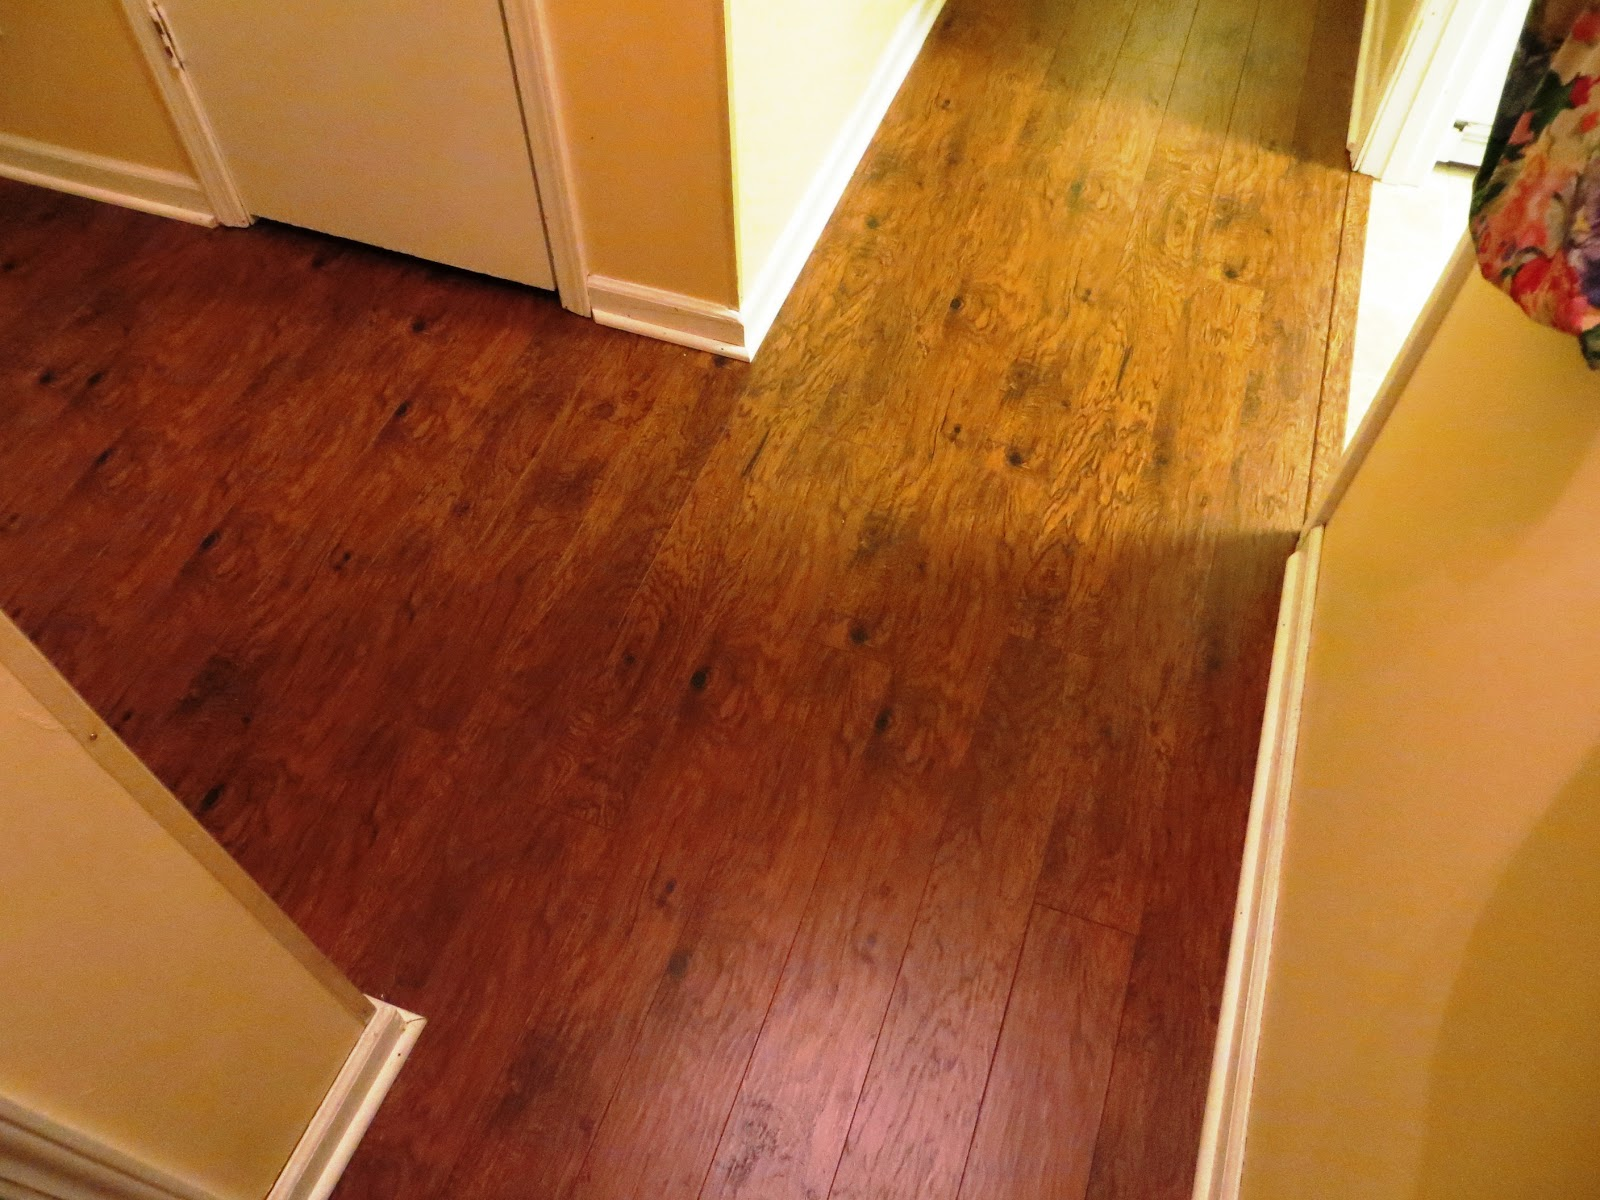 bella carpet floors weymouth to here a get flooring of abbey click cera hardwood